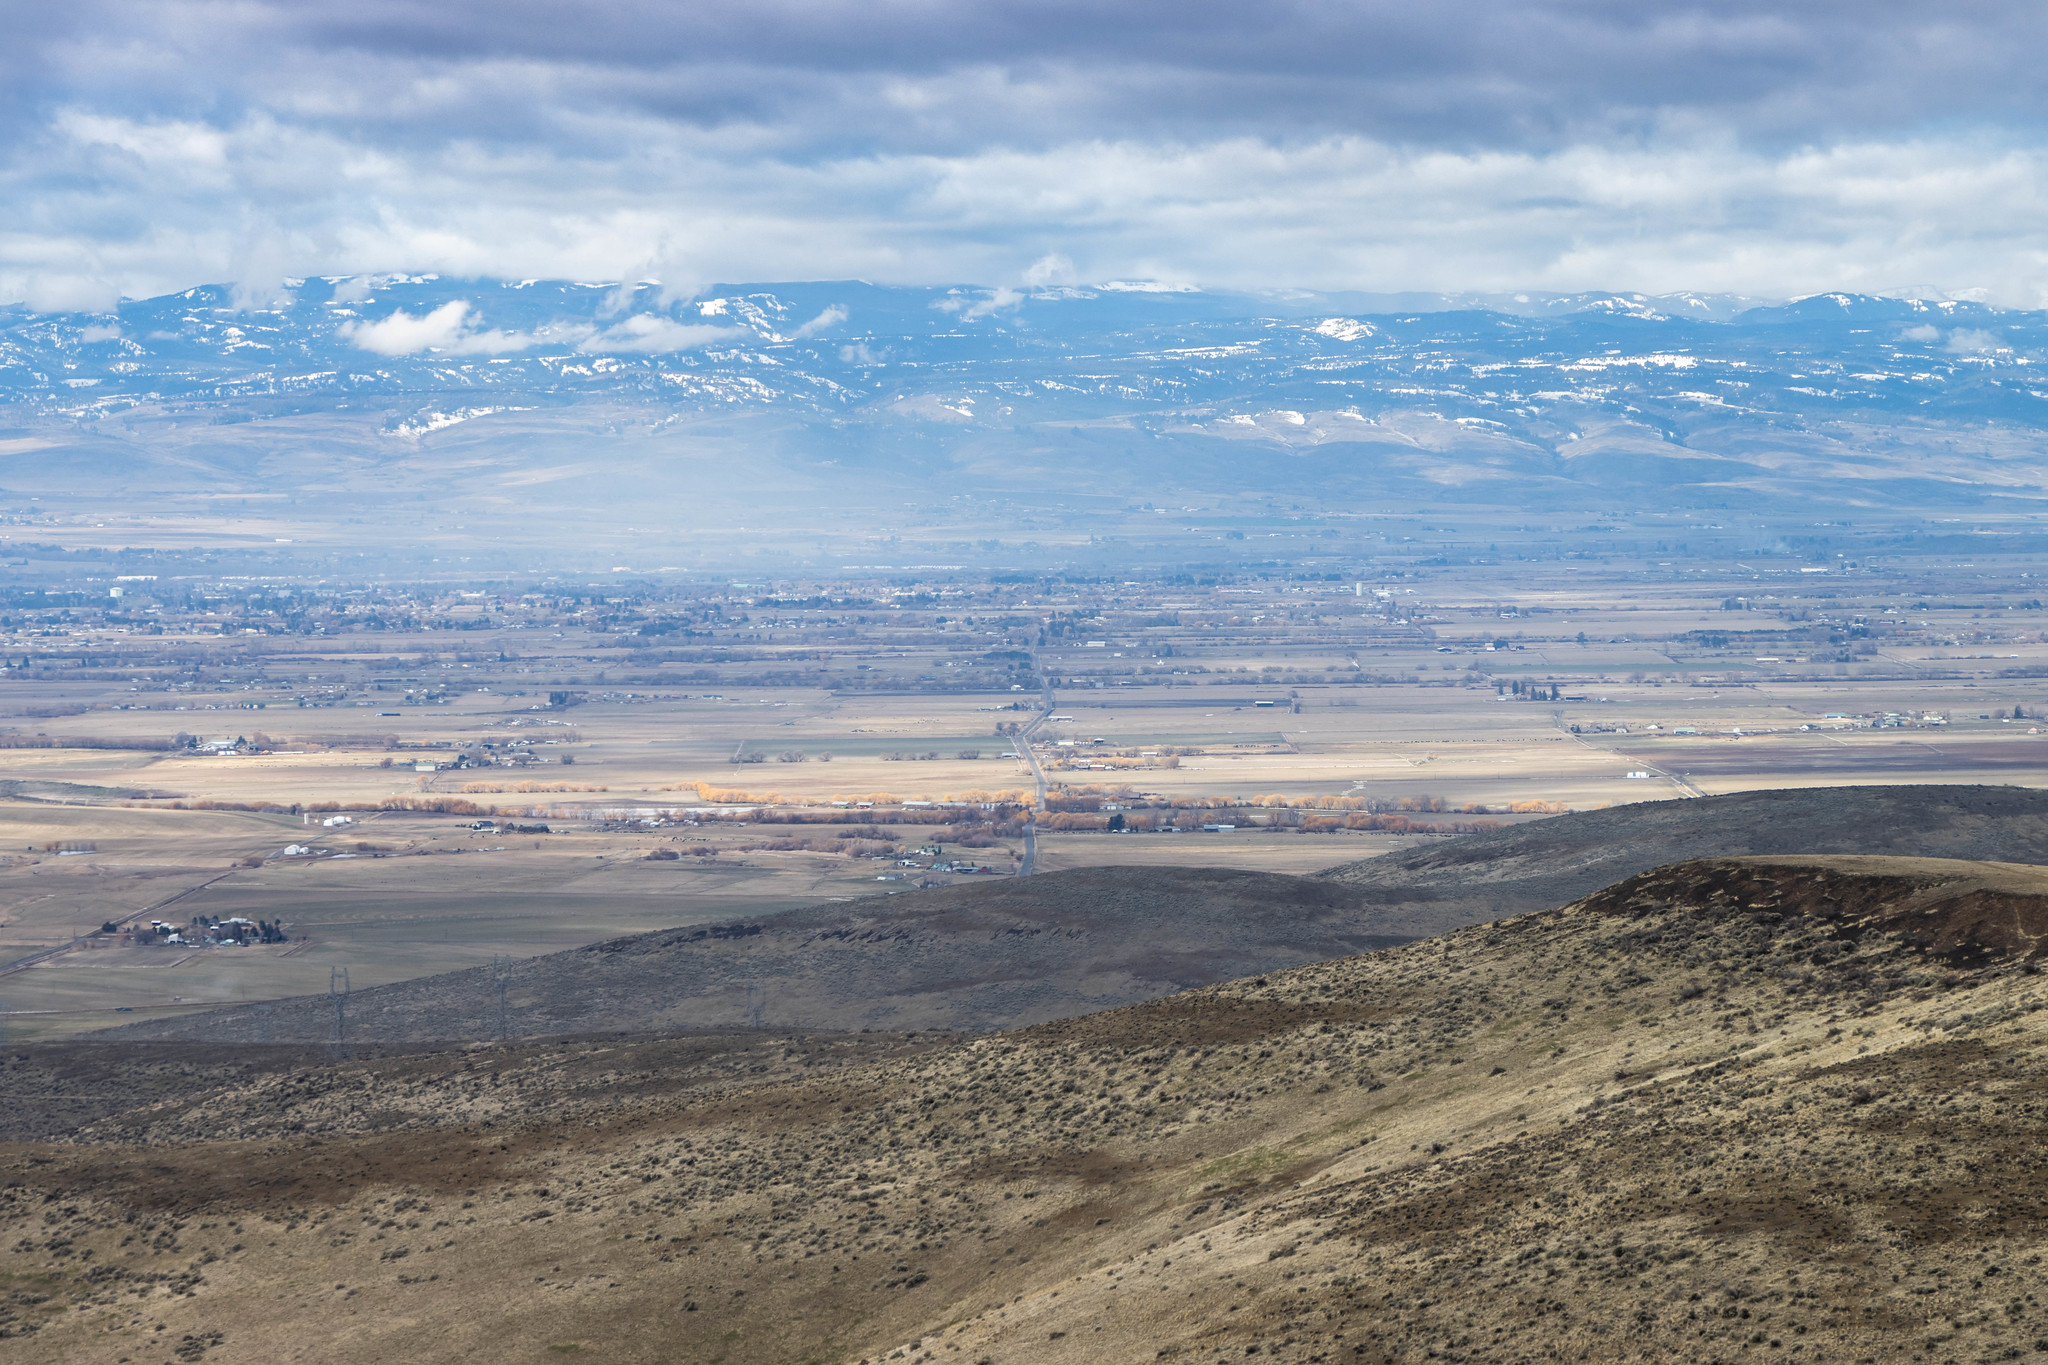 Kittitas Valley from Farmer's Hat